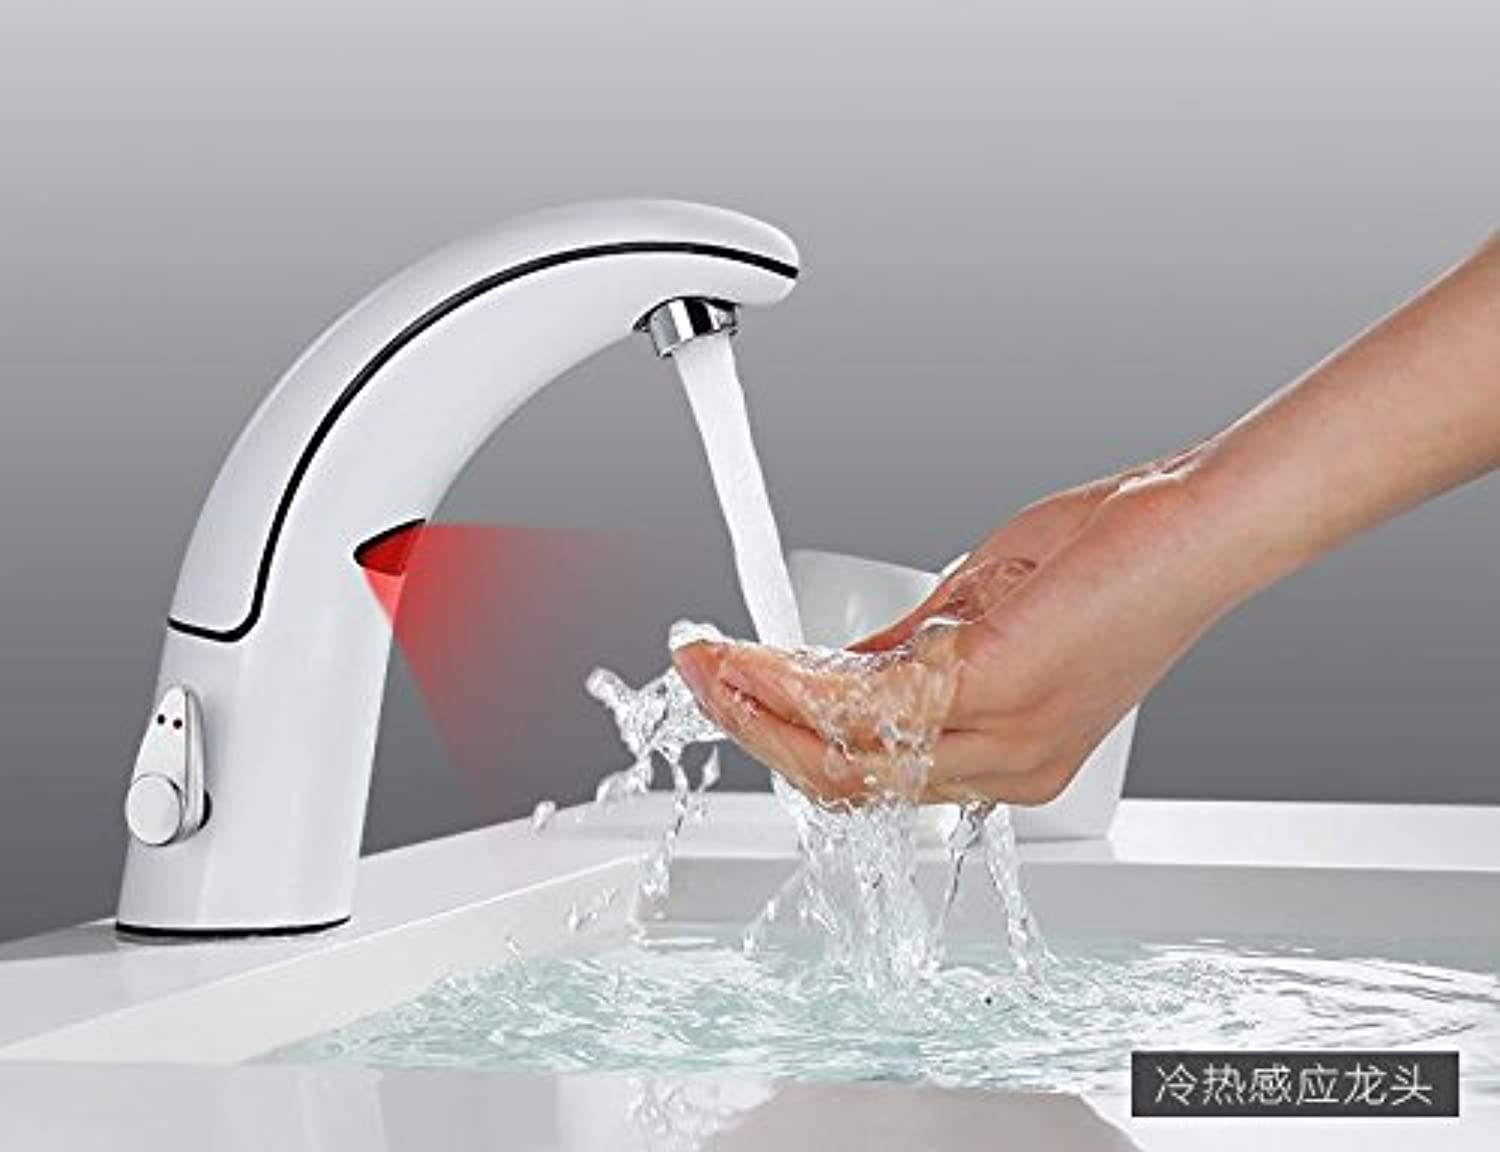 Mangeoo Single Handle Basin Faucet Single Hole Combined Cold And Hot Water Copper Ceramic Spool redating Wash Basin Kitchen Bathroom Faucet Basin Container